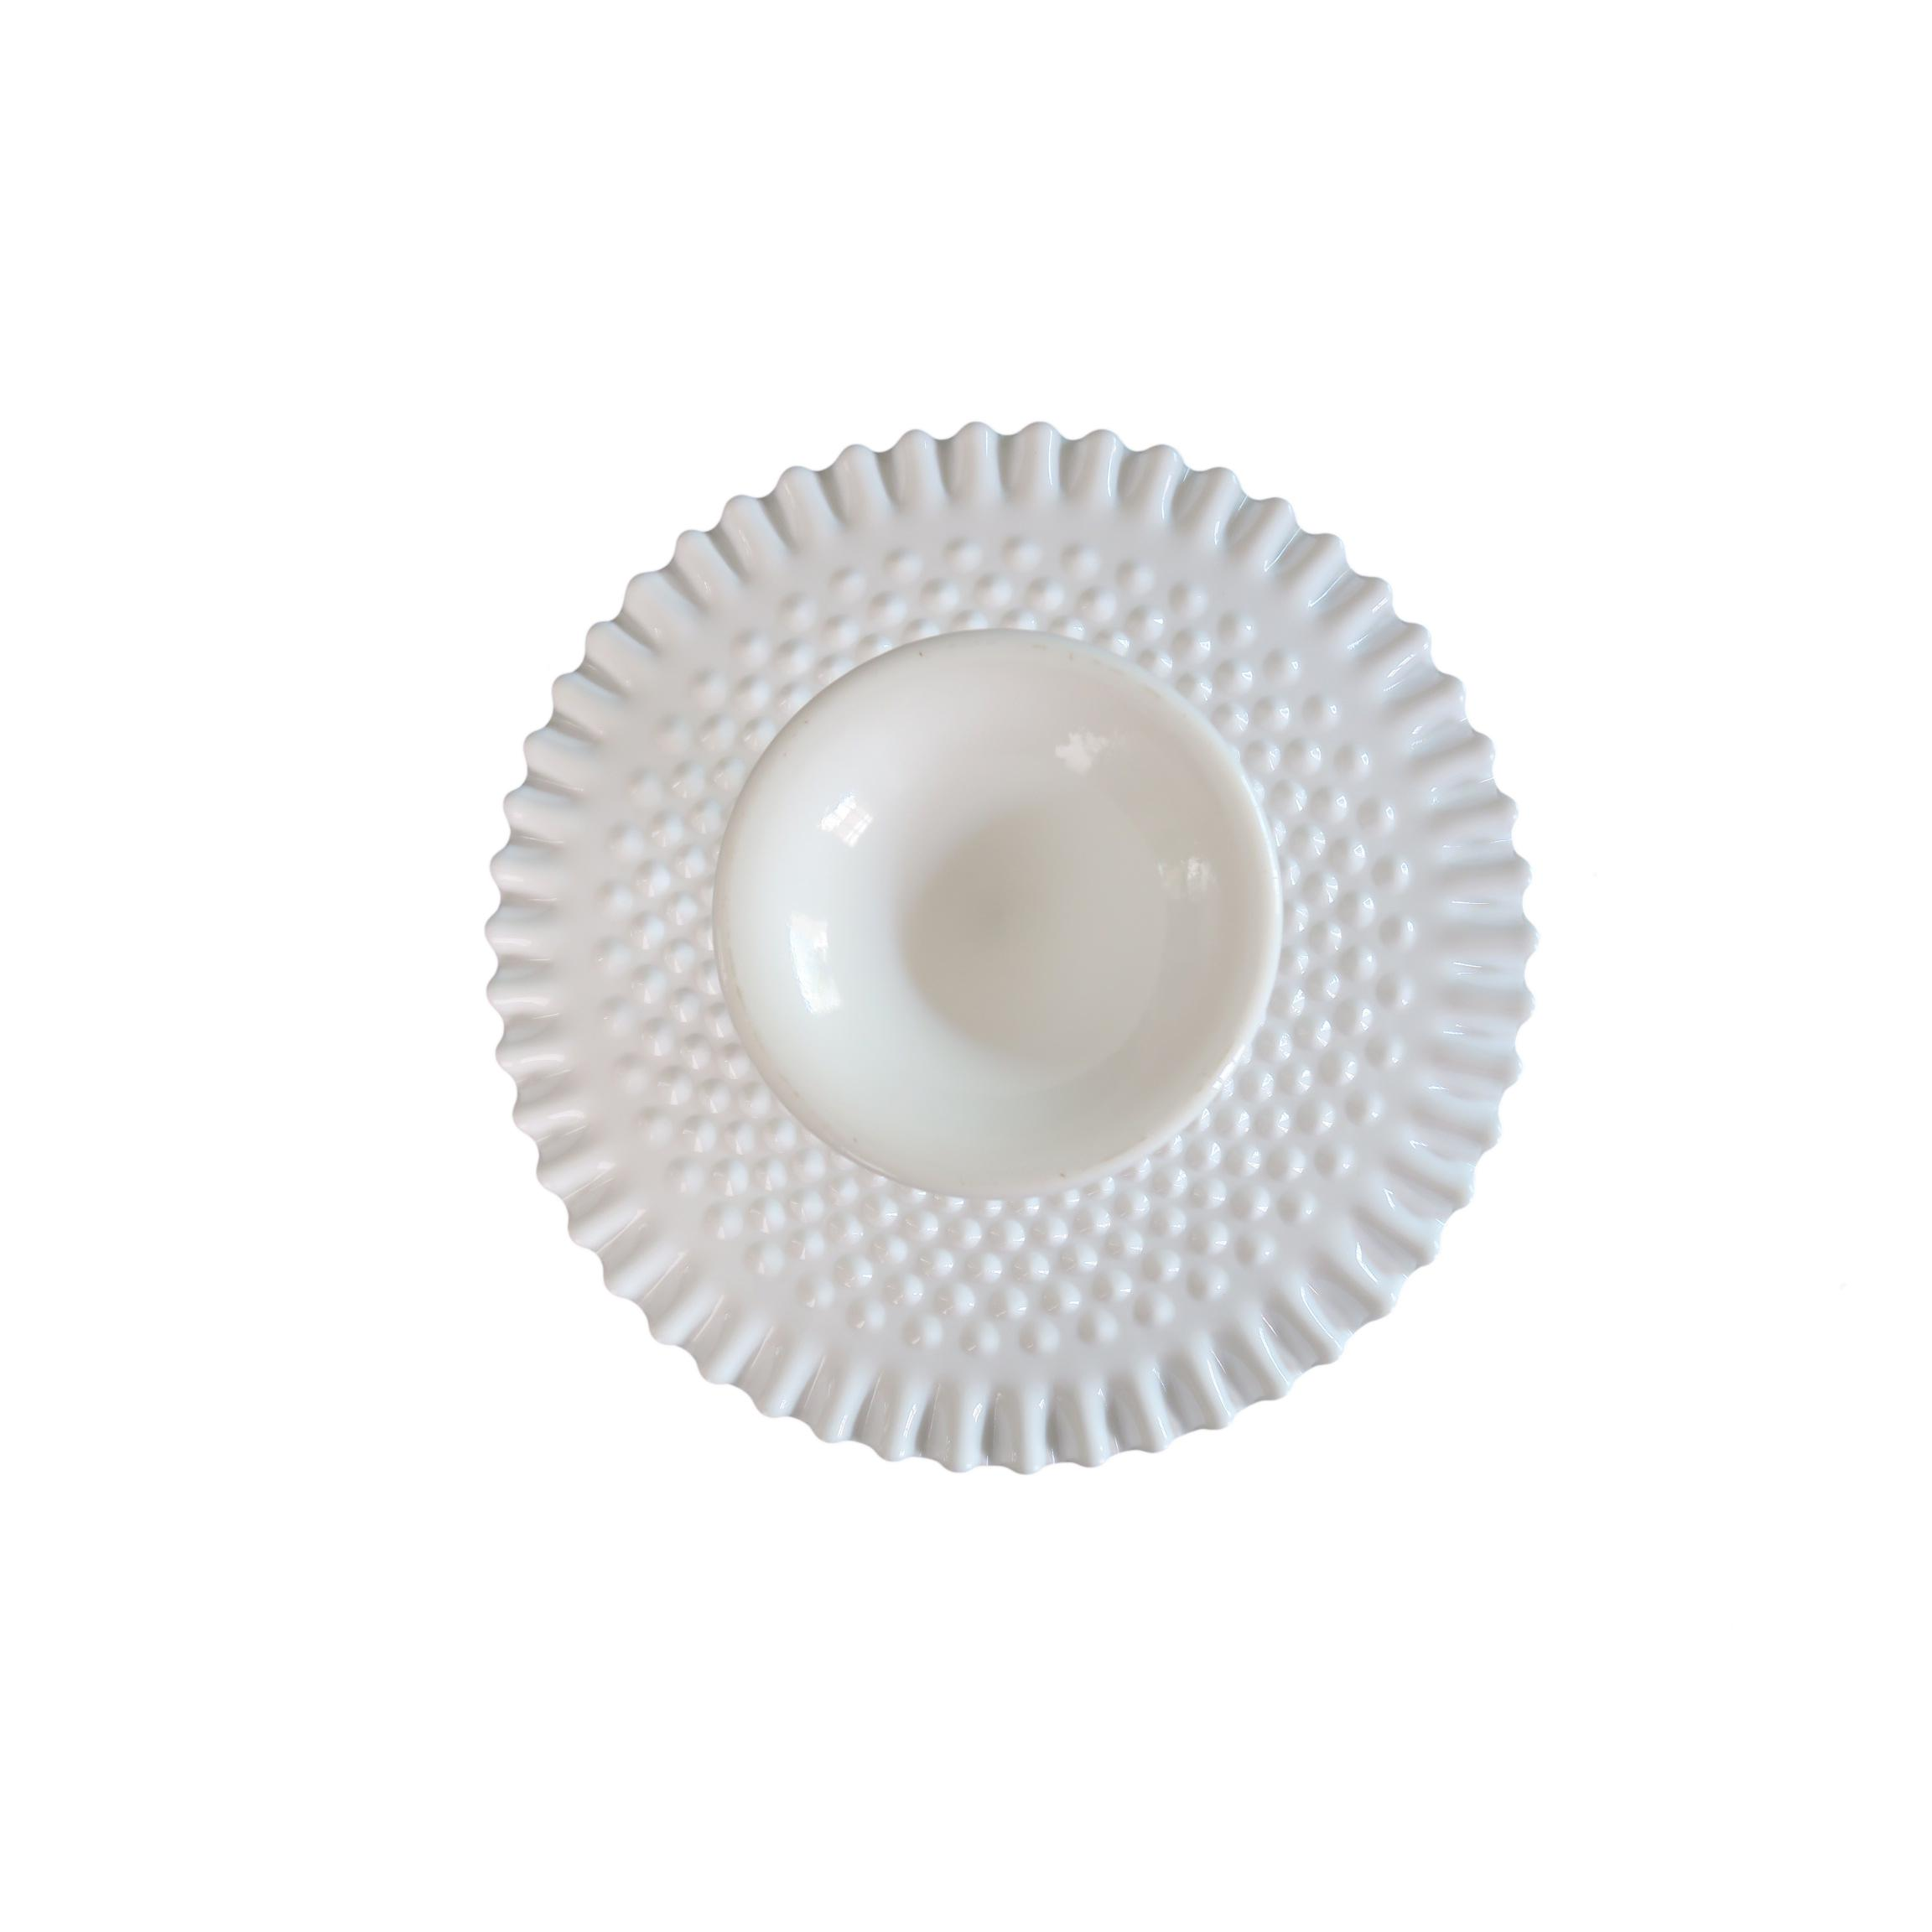 Vintage Fenton White Milk Glass Hobnail Round Fluted Cake Plate Stand - Image 2 of 5  sc 1 st  Chairish & Vintage Fenton White Milk Glass Hobnail Round Fluted Cake Plate ...